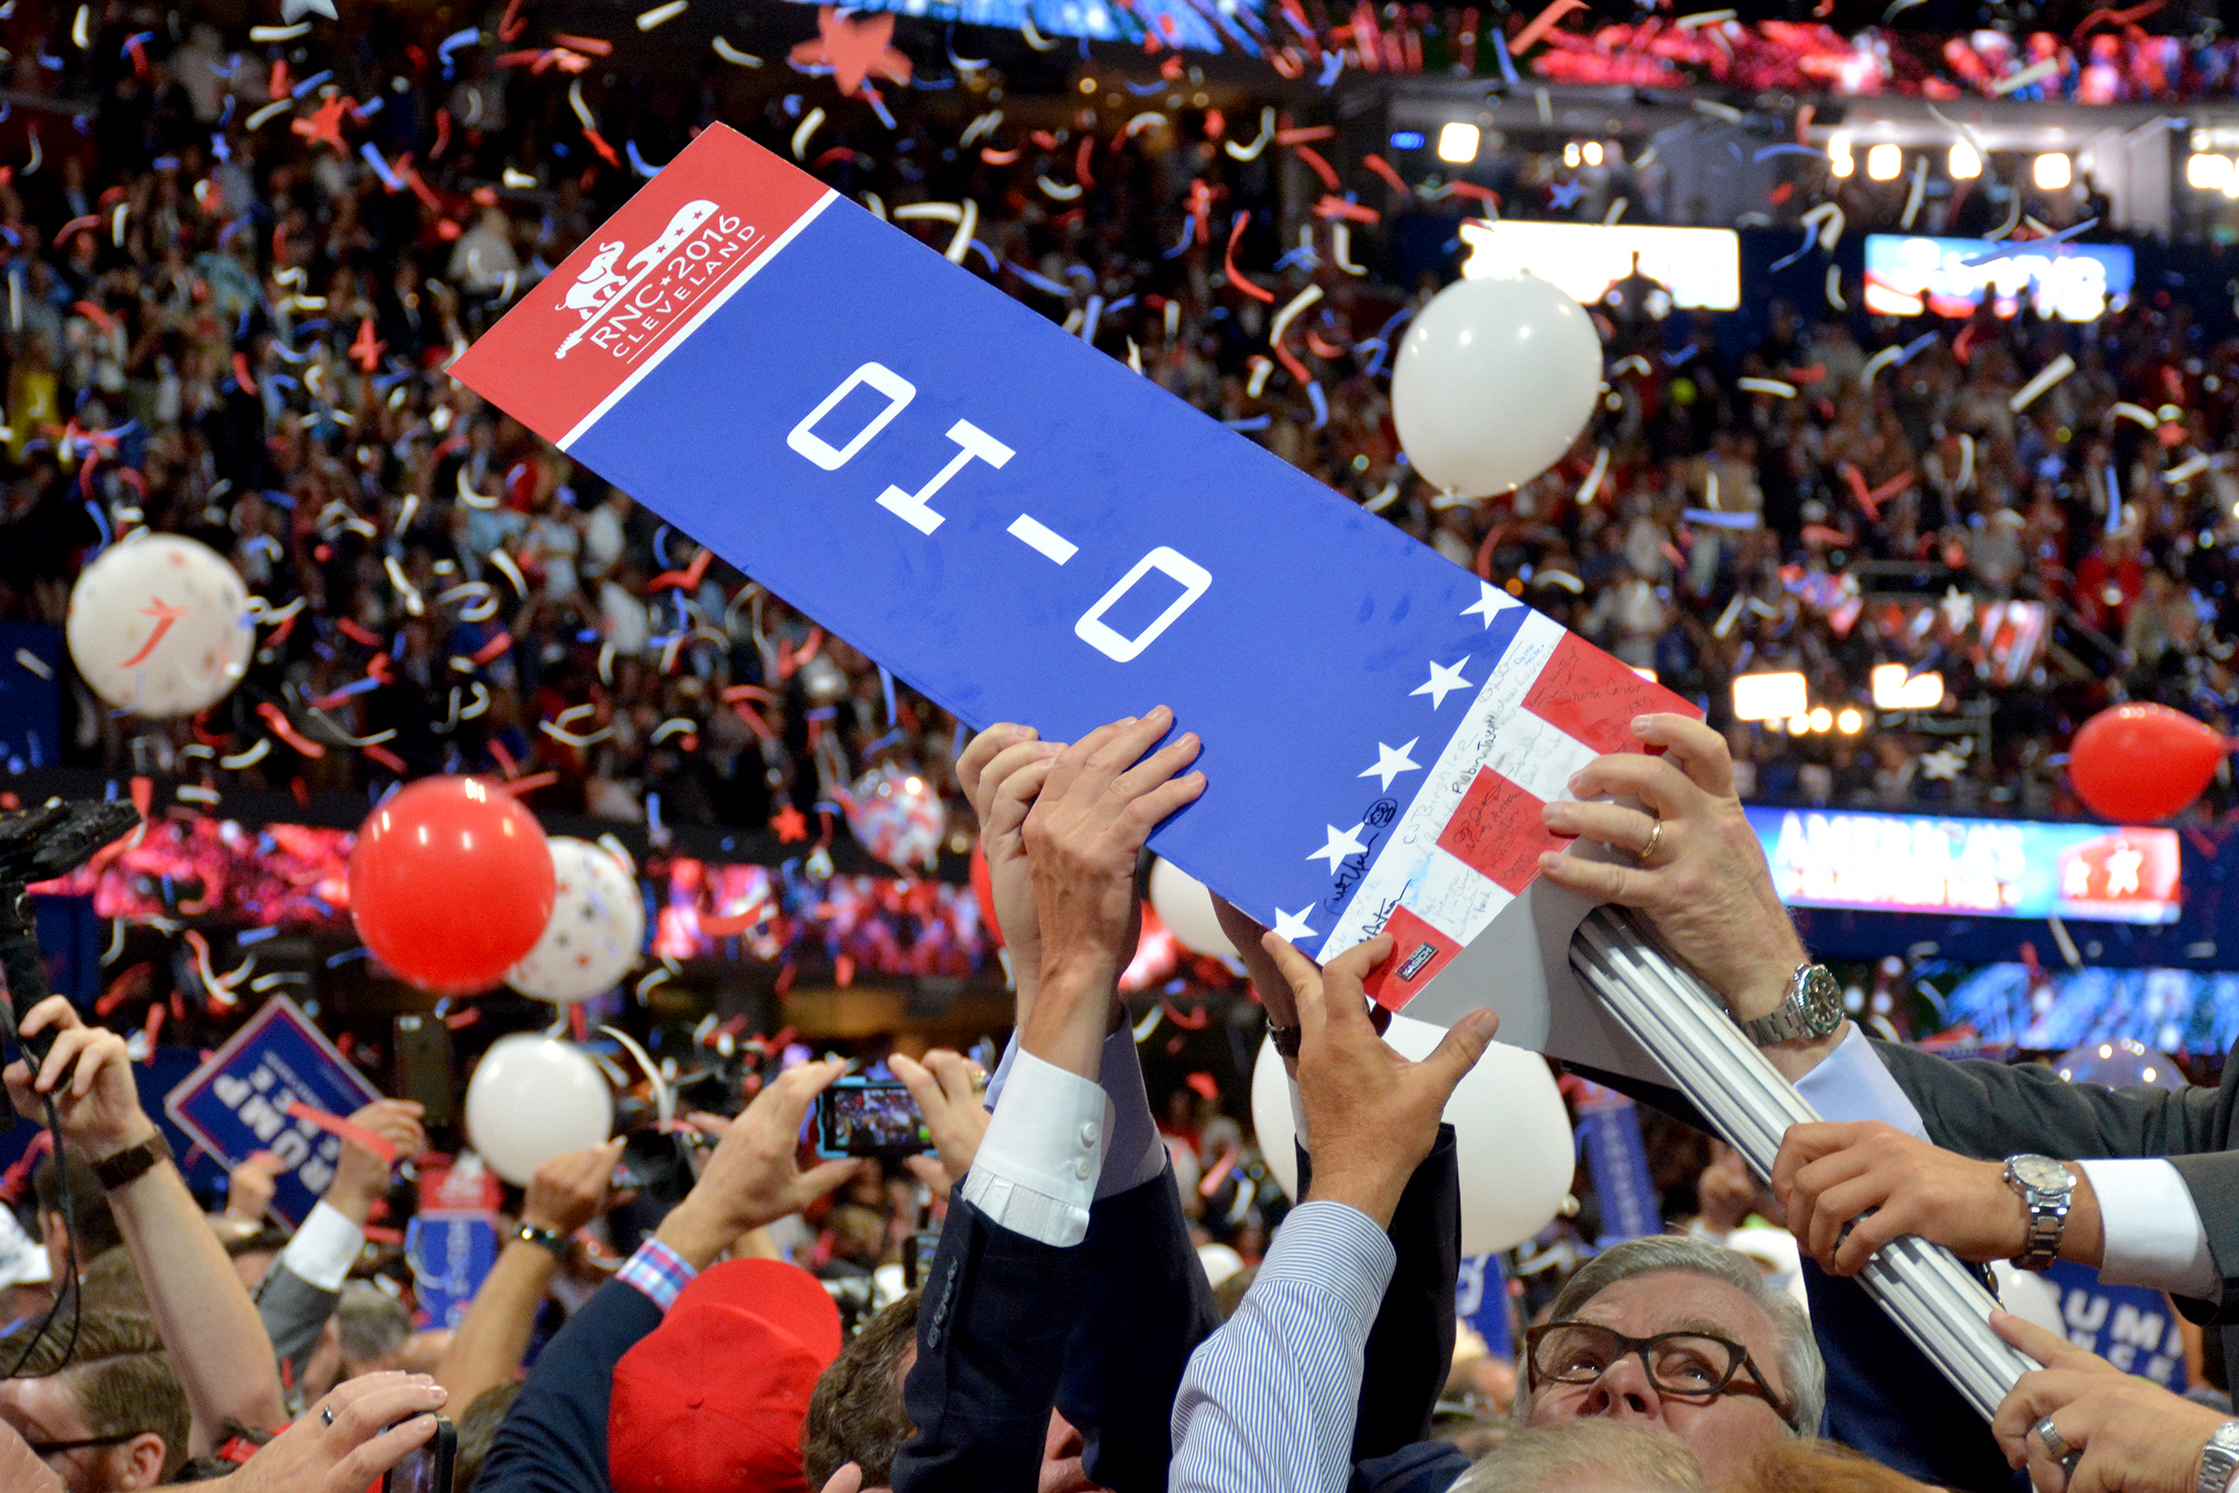 Ohio Republicans remove their state's sign at the end of the party's convention in Cleveland. [Nick Castele / ideastream]